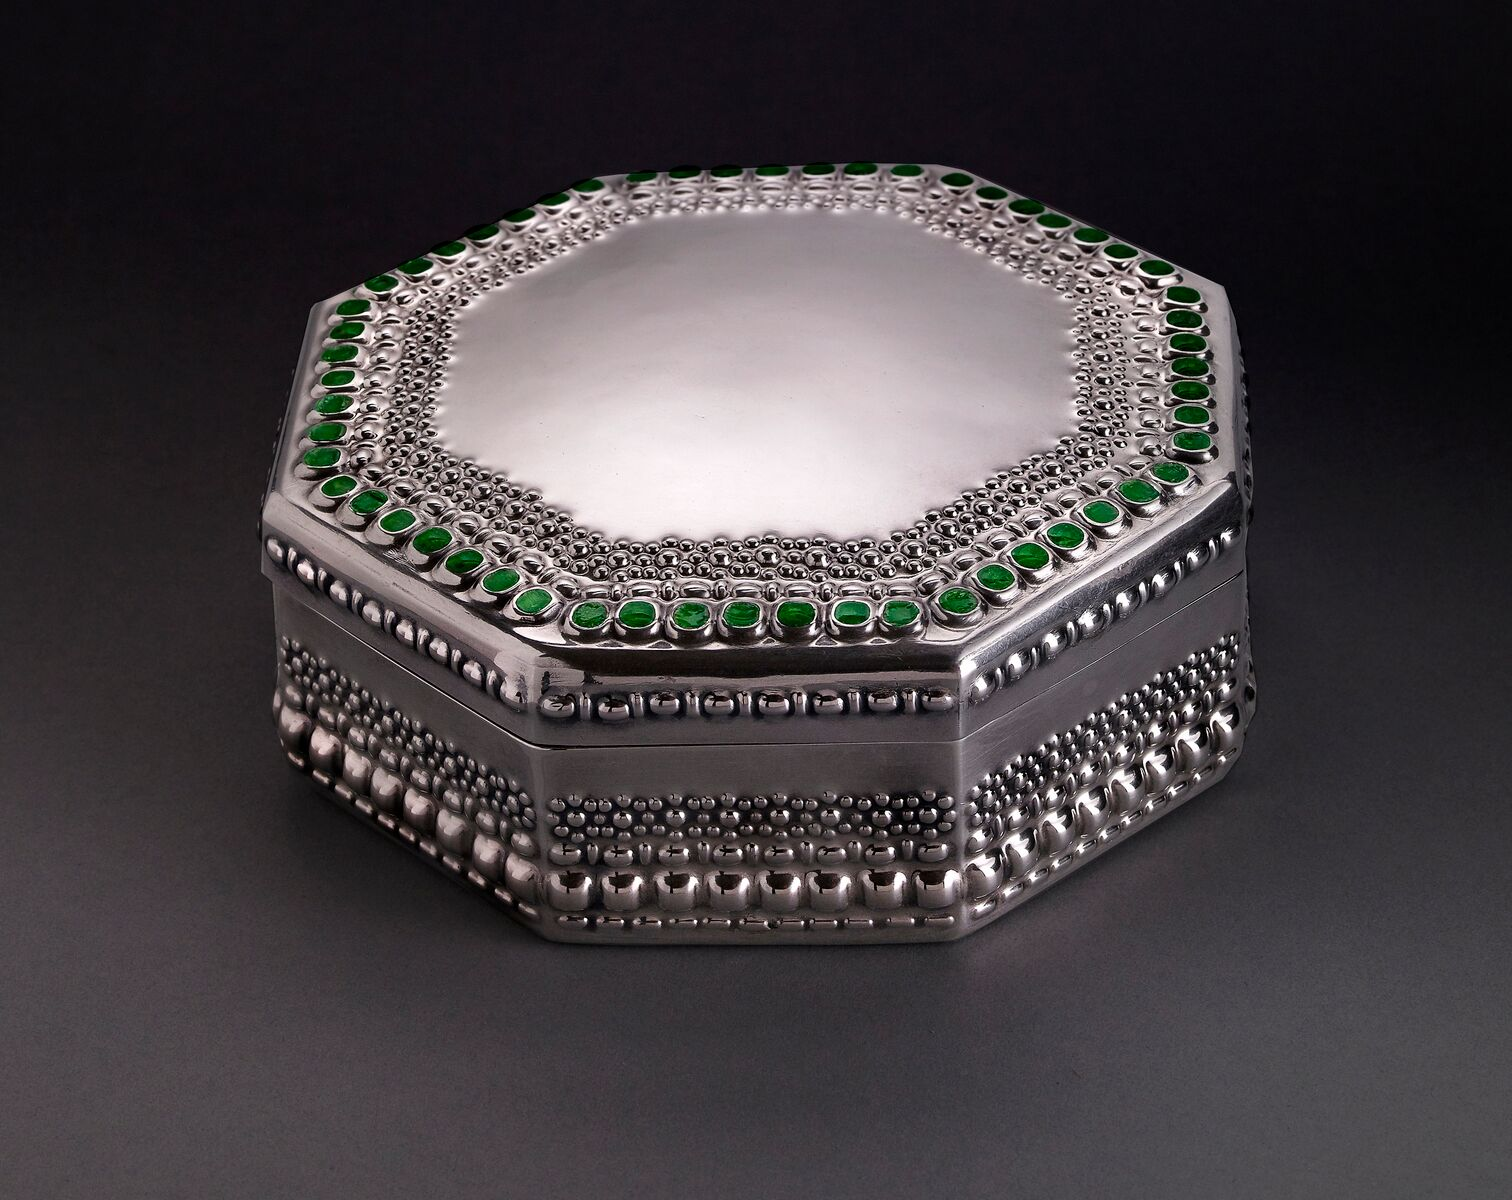 Tiffany Studios, Covered Box , about 1905, silver, transparent enamel. Photograph by John Faier. © 2013 Driehaus Museum